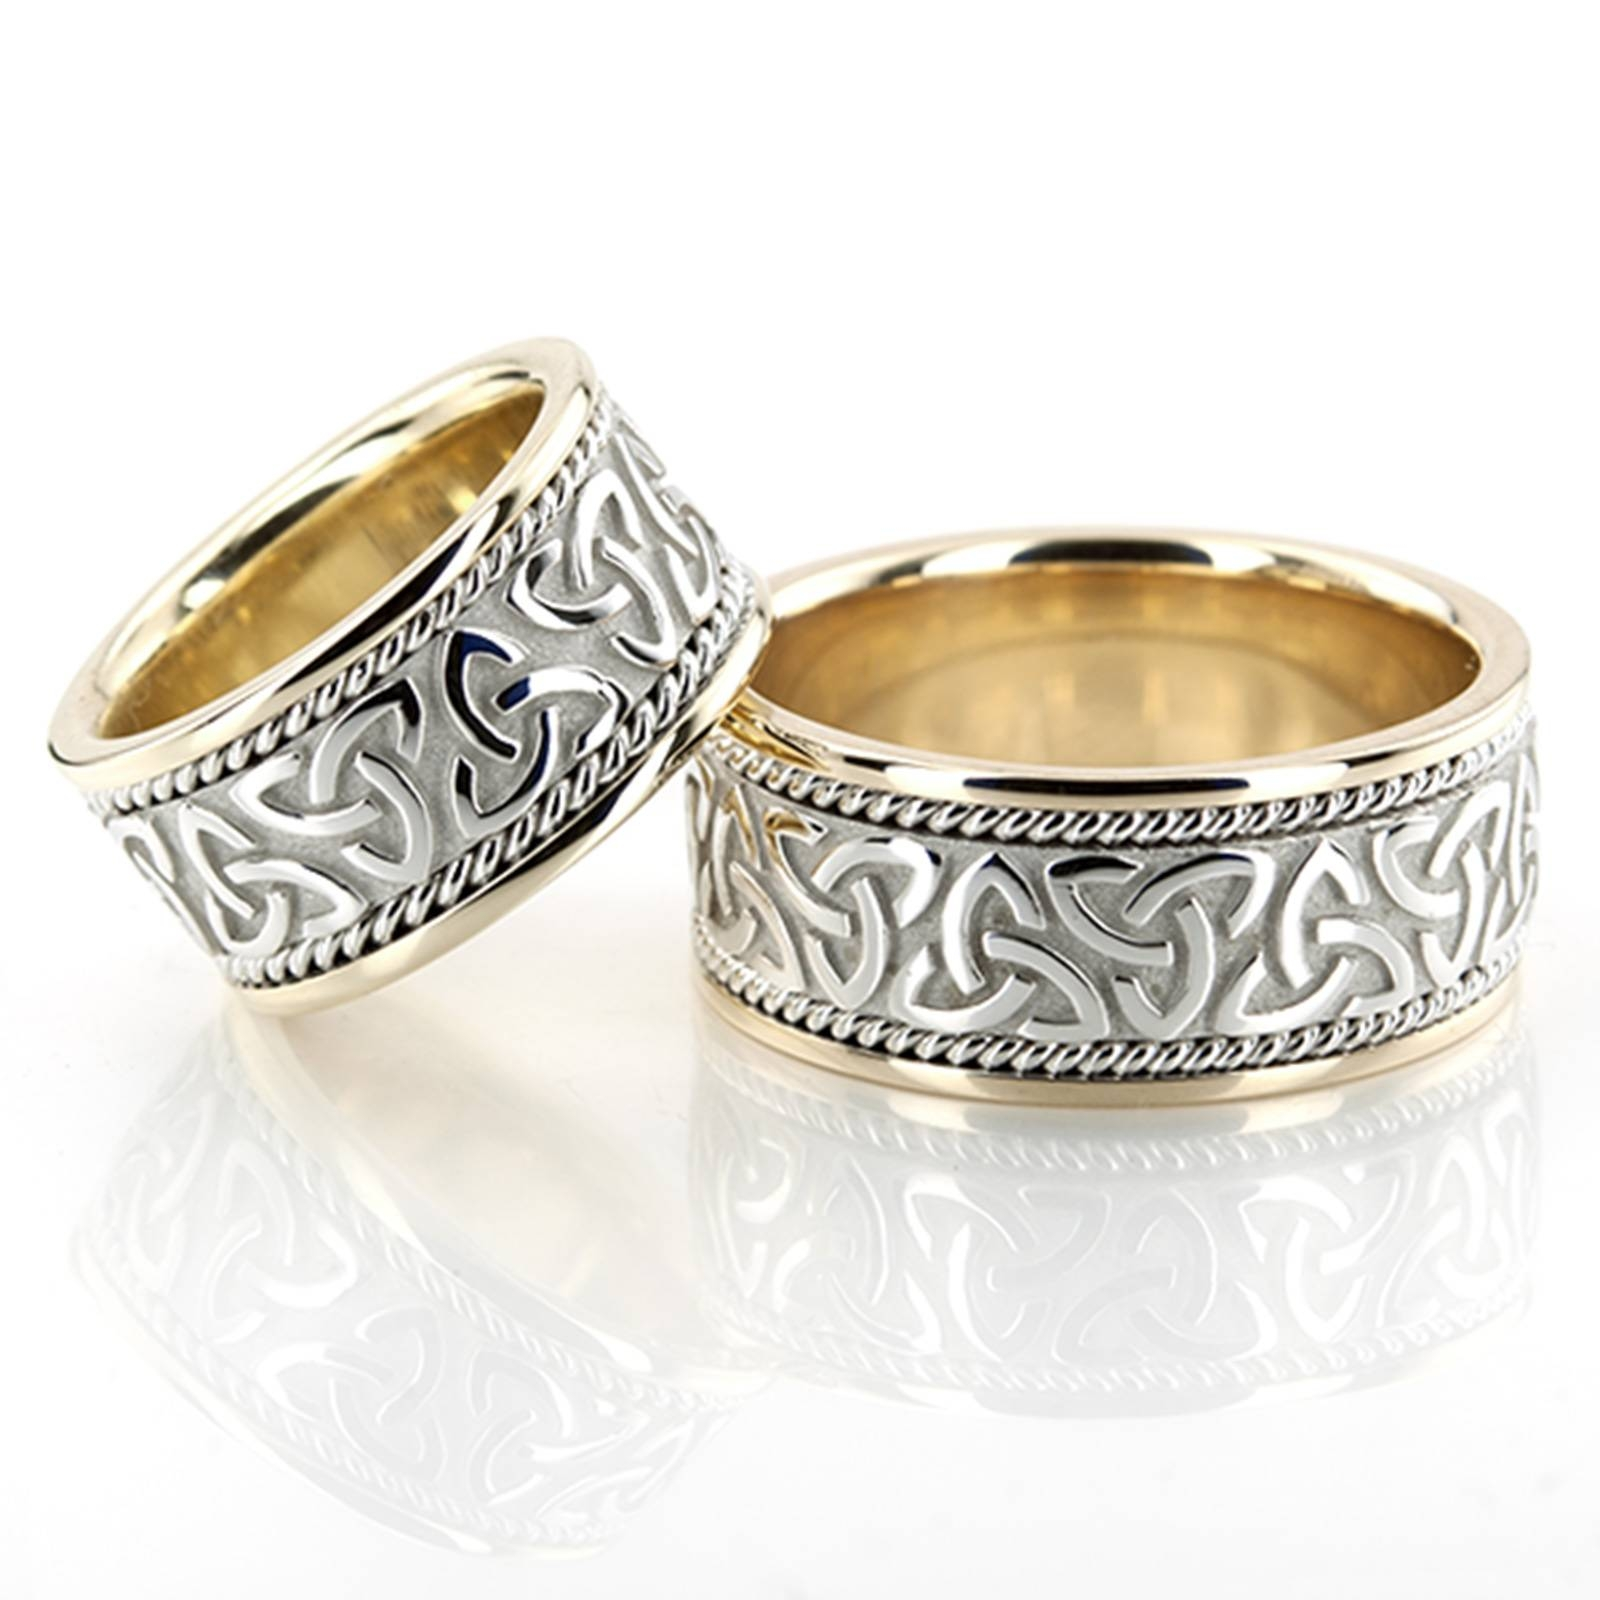 Wedding Rings : Mens Celtic Wedding Bands Gold Irish Celtic Regarding Irish Wedding Bands For Men (View 15 of 15)